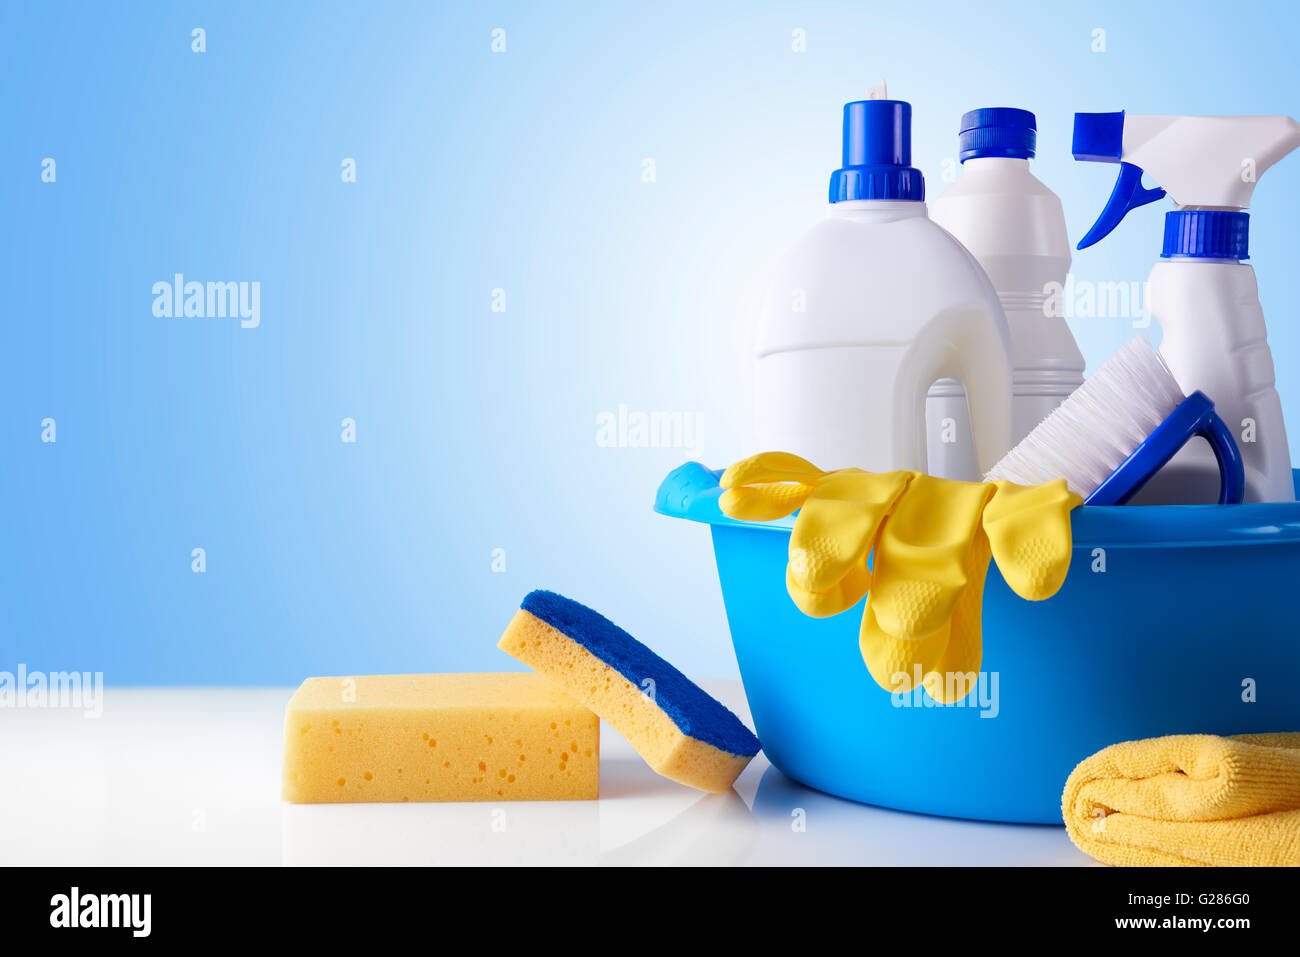 Professional cleaning equipment on white table and blue background overview. Cleaning tools company concept. Front - Stock Image